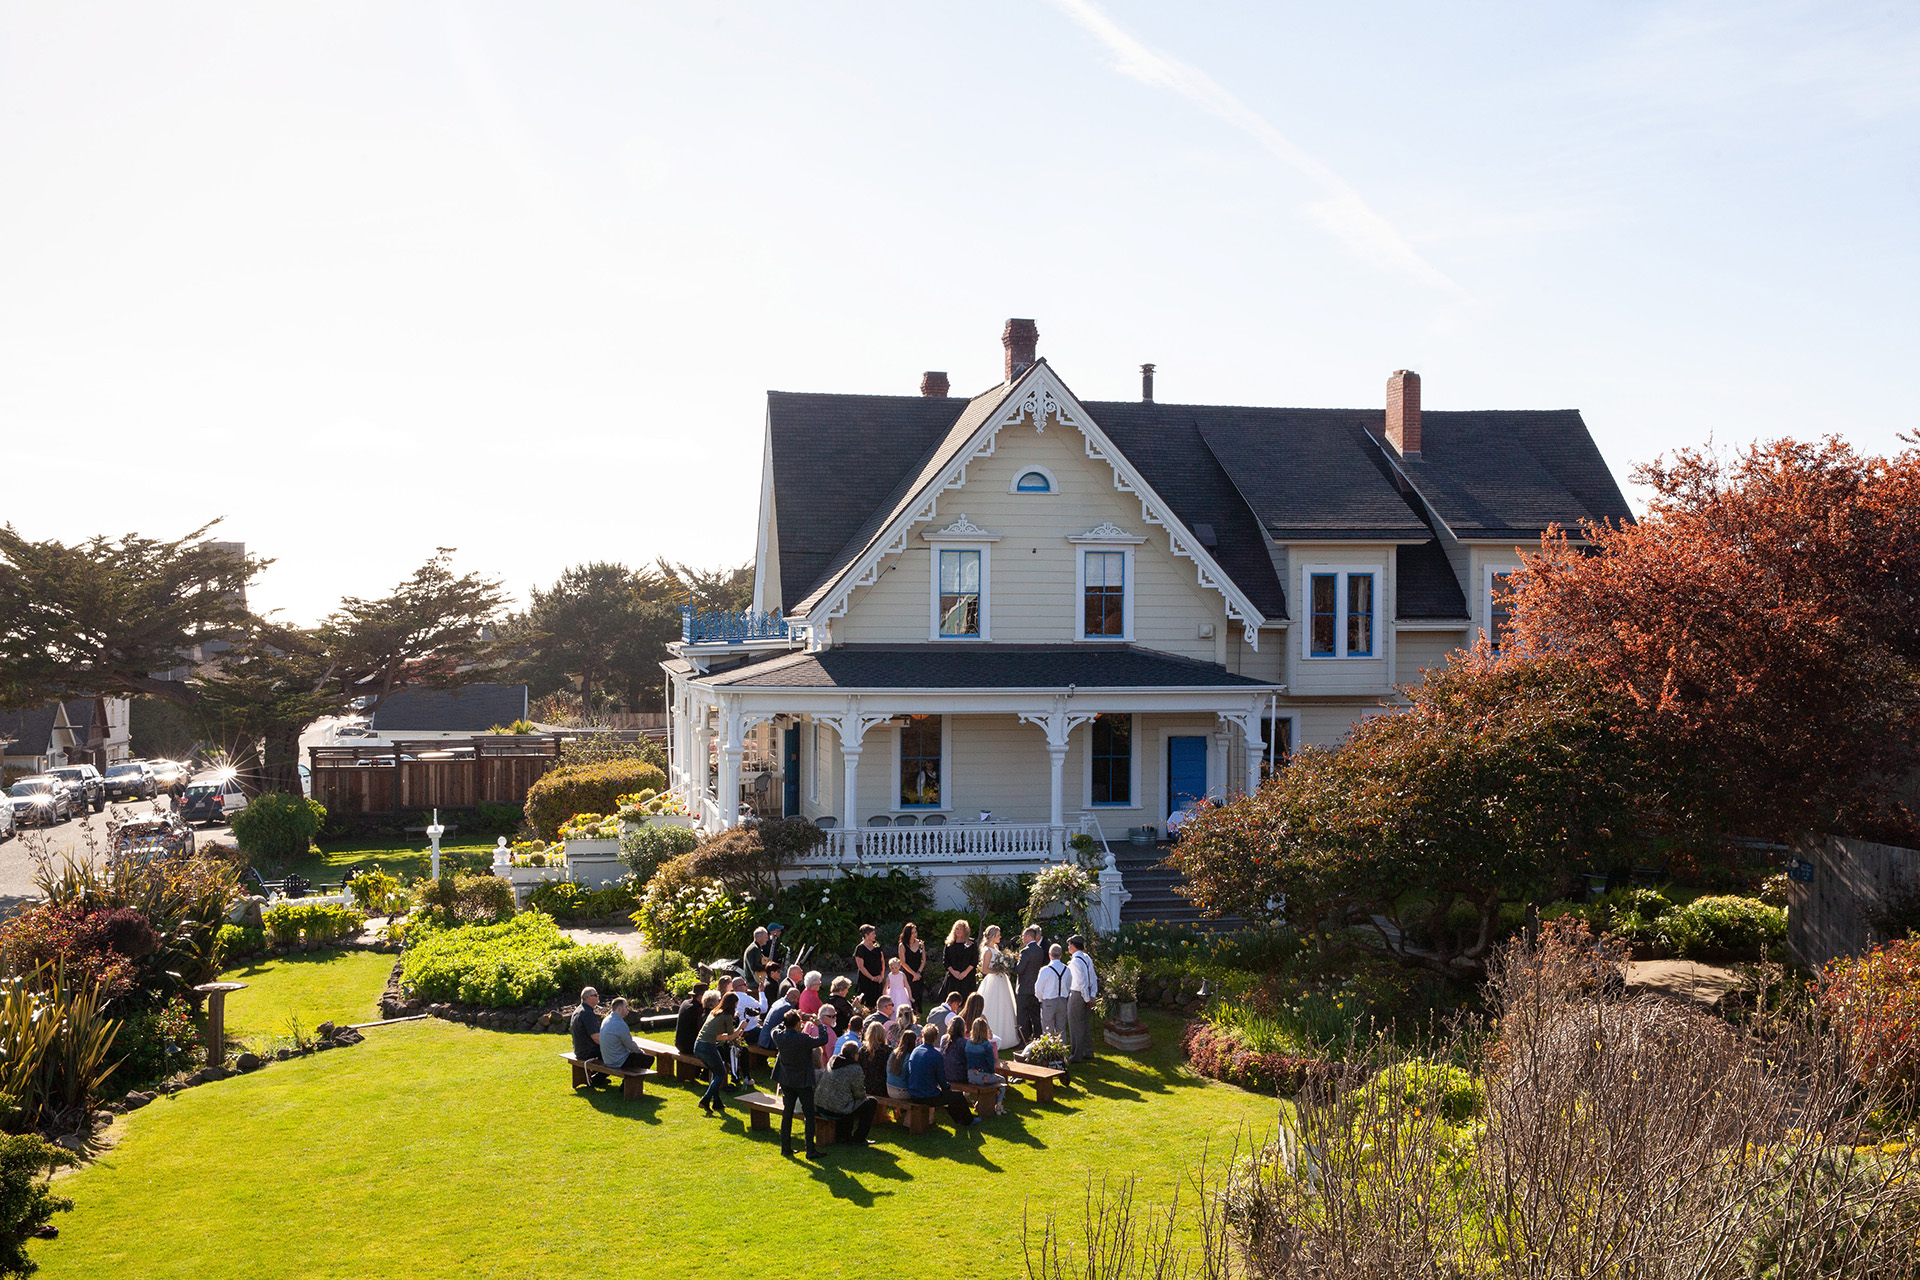 Northern California Elopement Ceremony Photo | An overall view of the ceremony